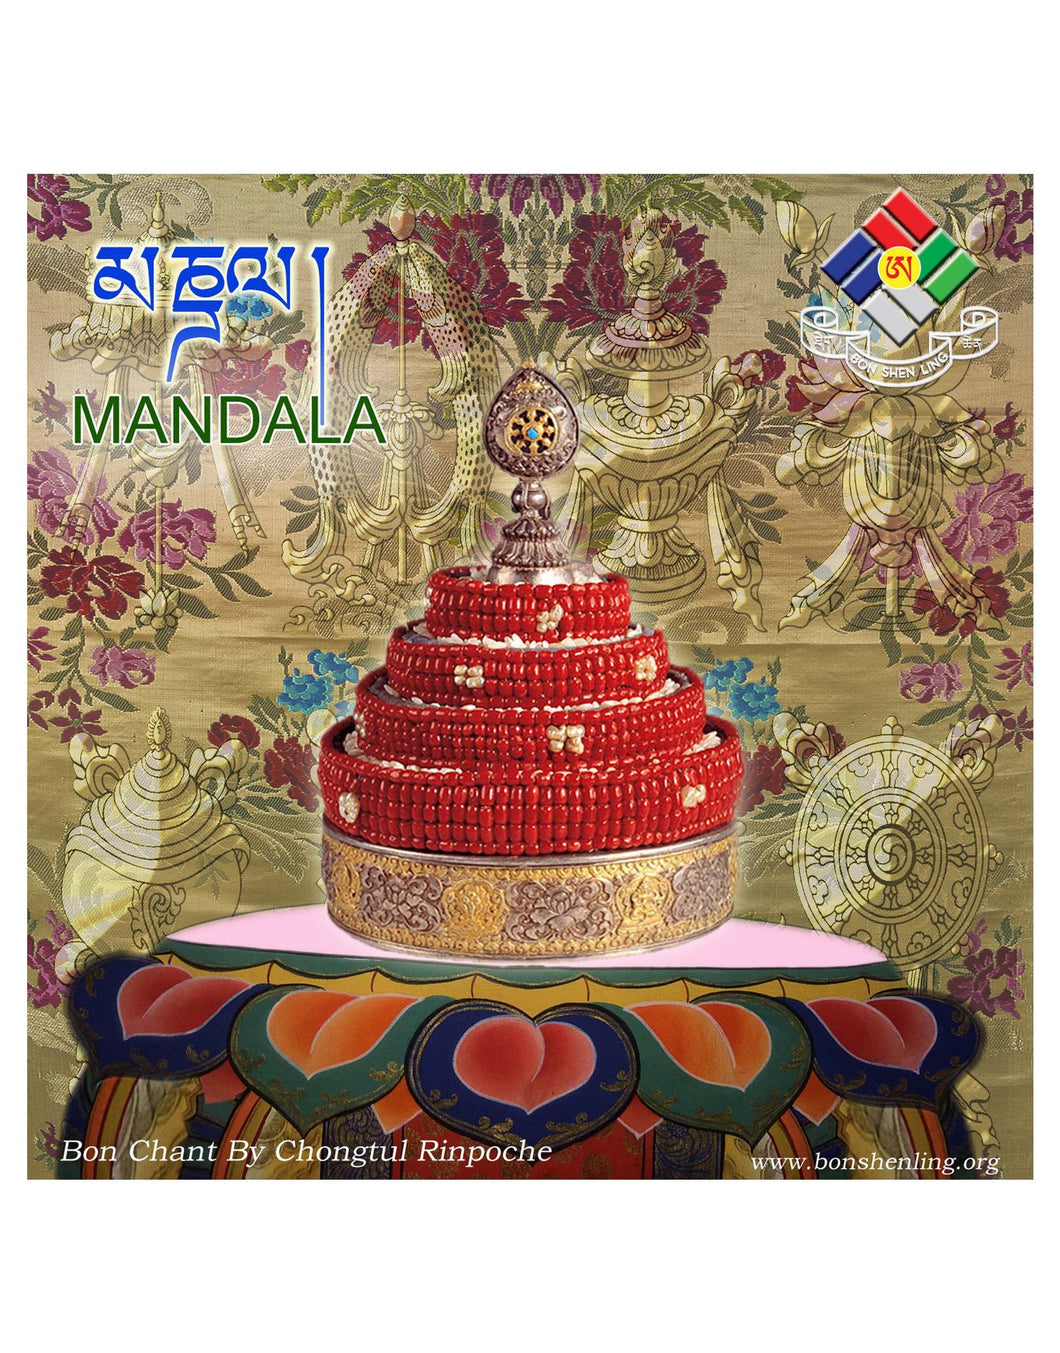 Mandala offering audio CD